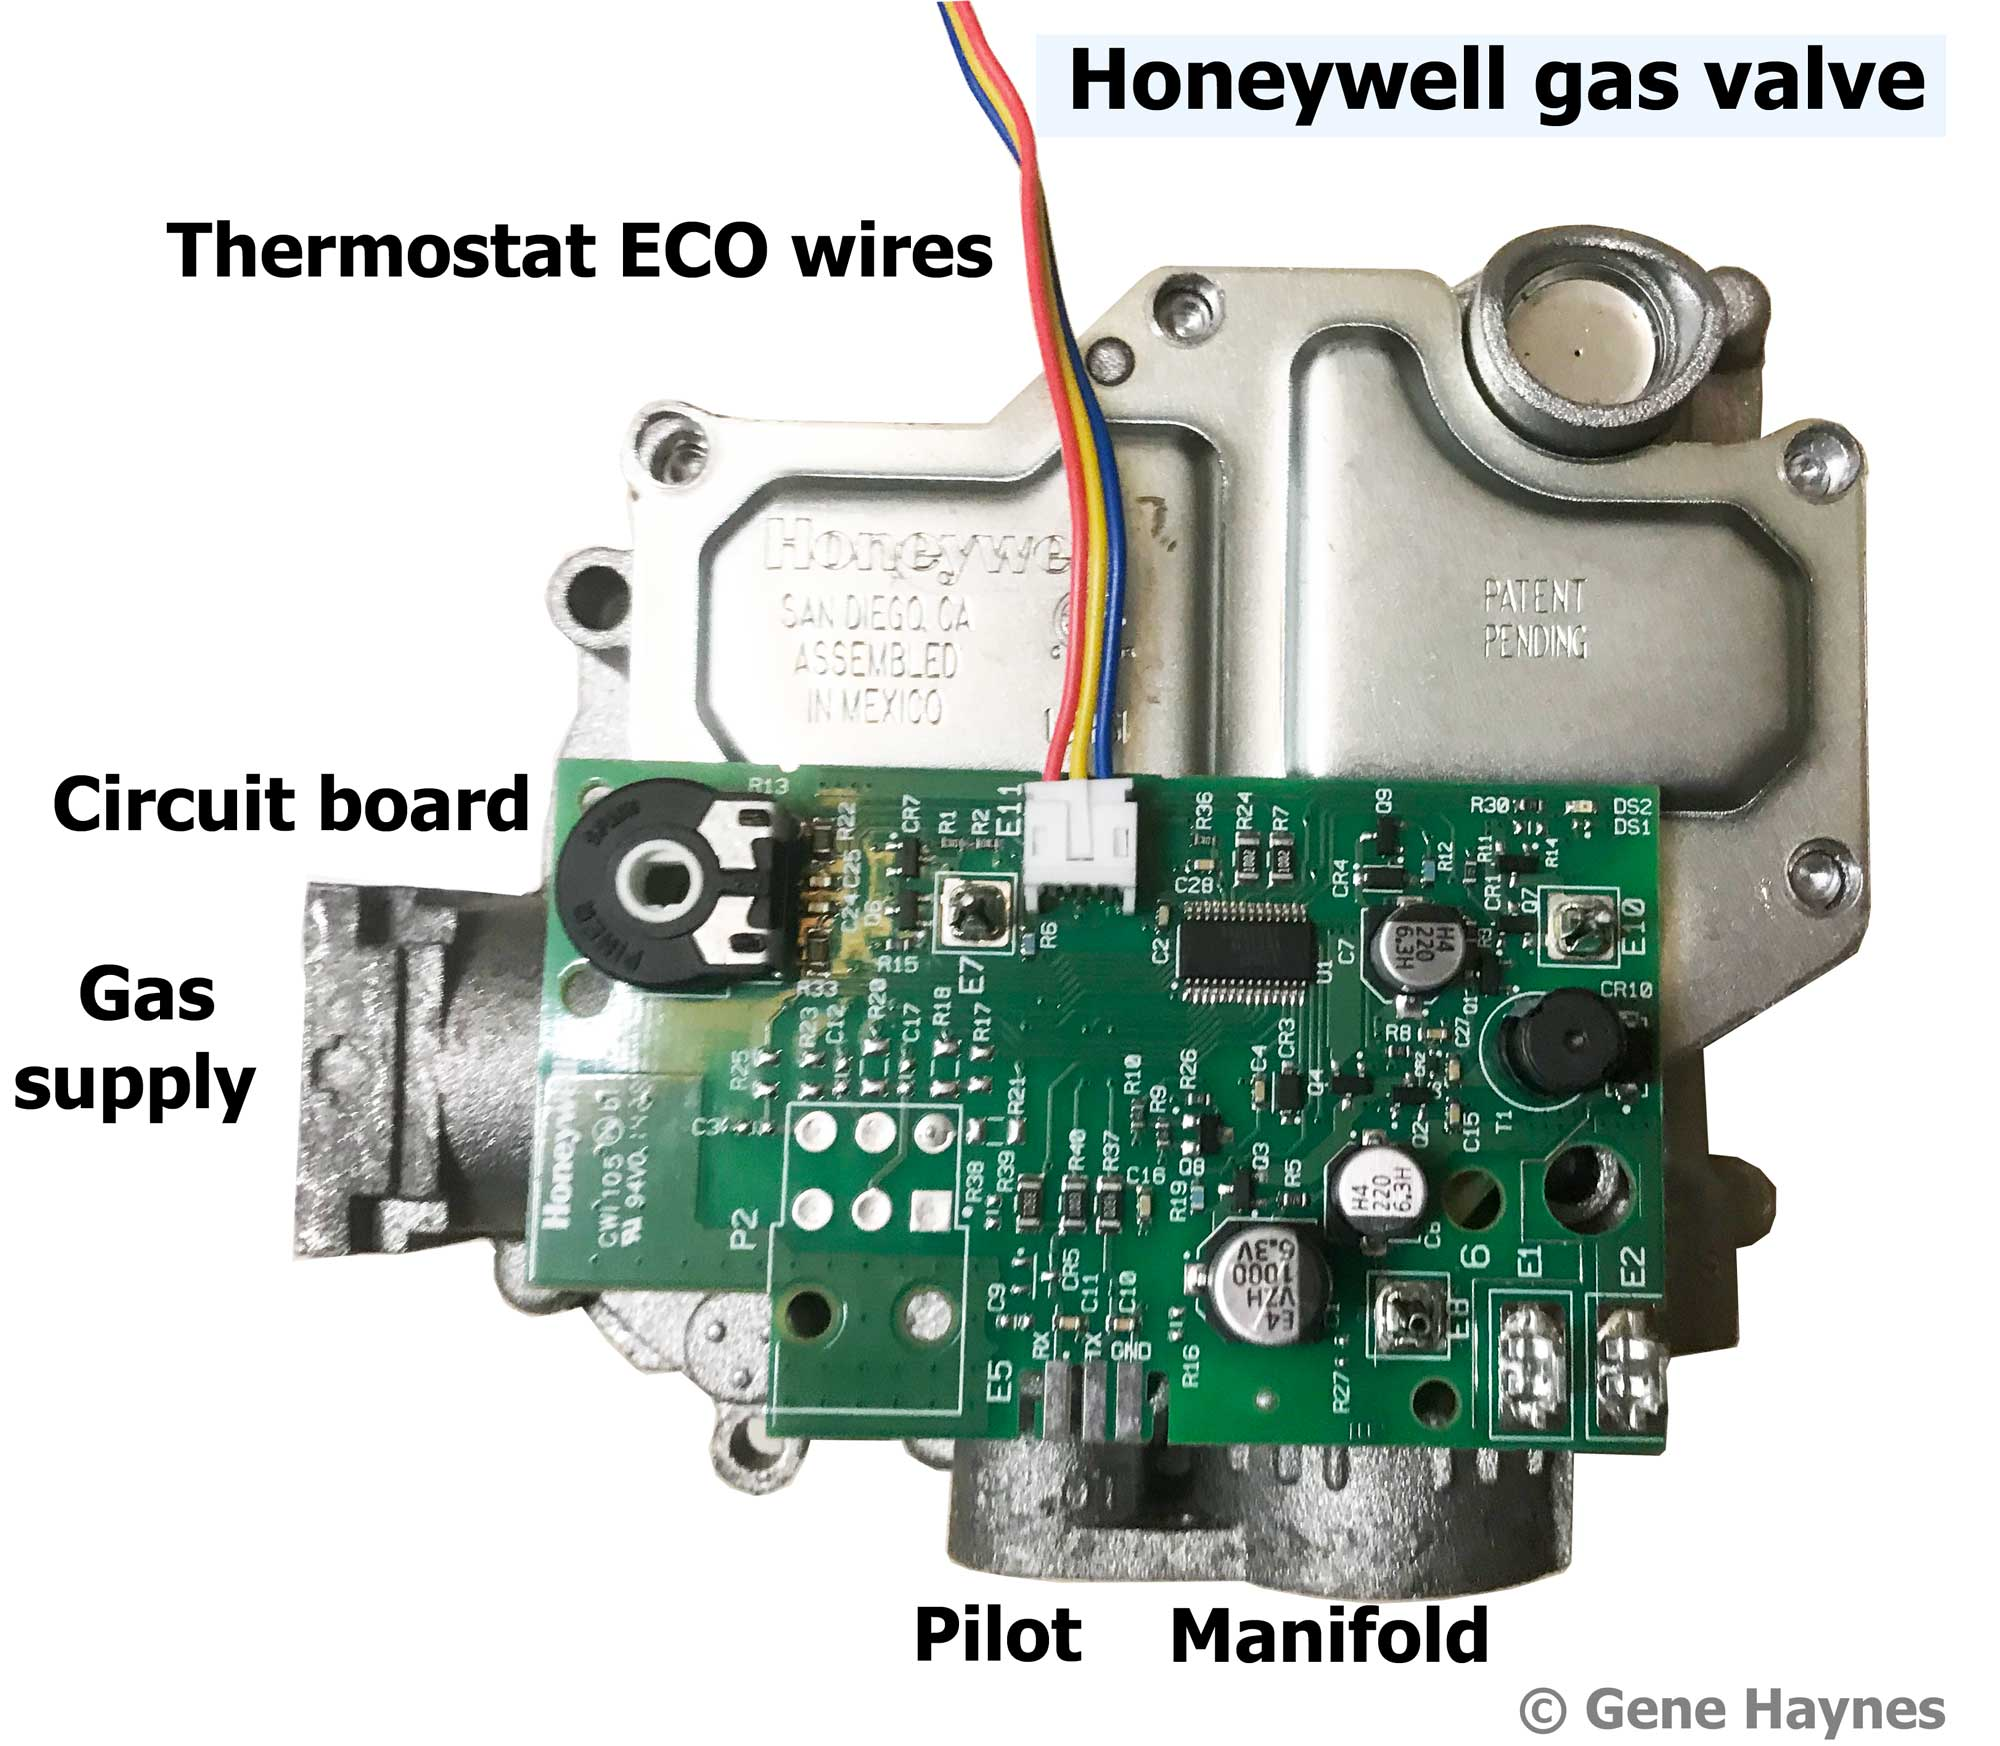 Honeywell Gas Valve Blinking 4 Times Details About Atwood 10 Gallon Water Heater Circuit Board Boards Vary By Model Number And From Another Cannot Be Plugged Into